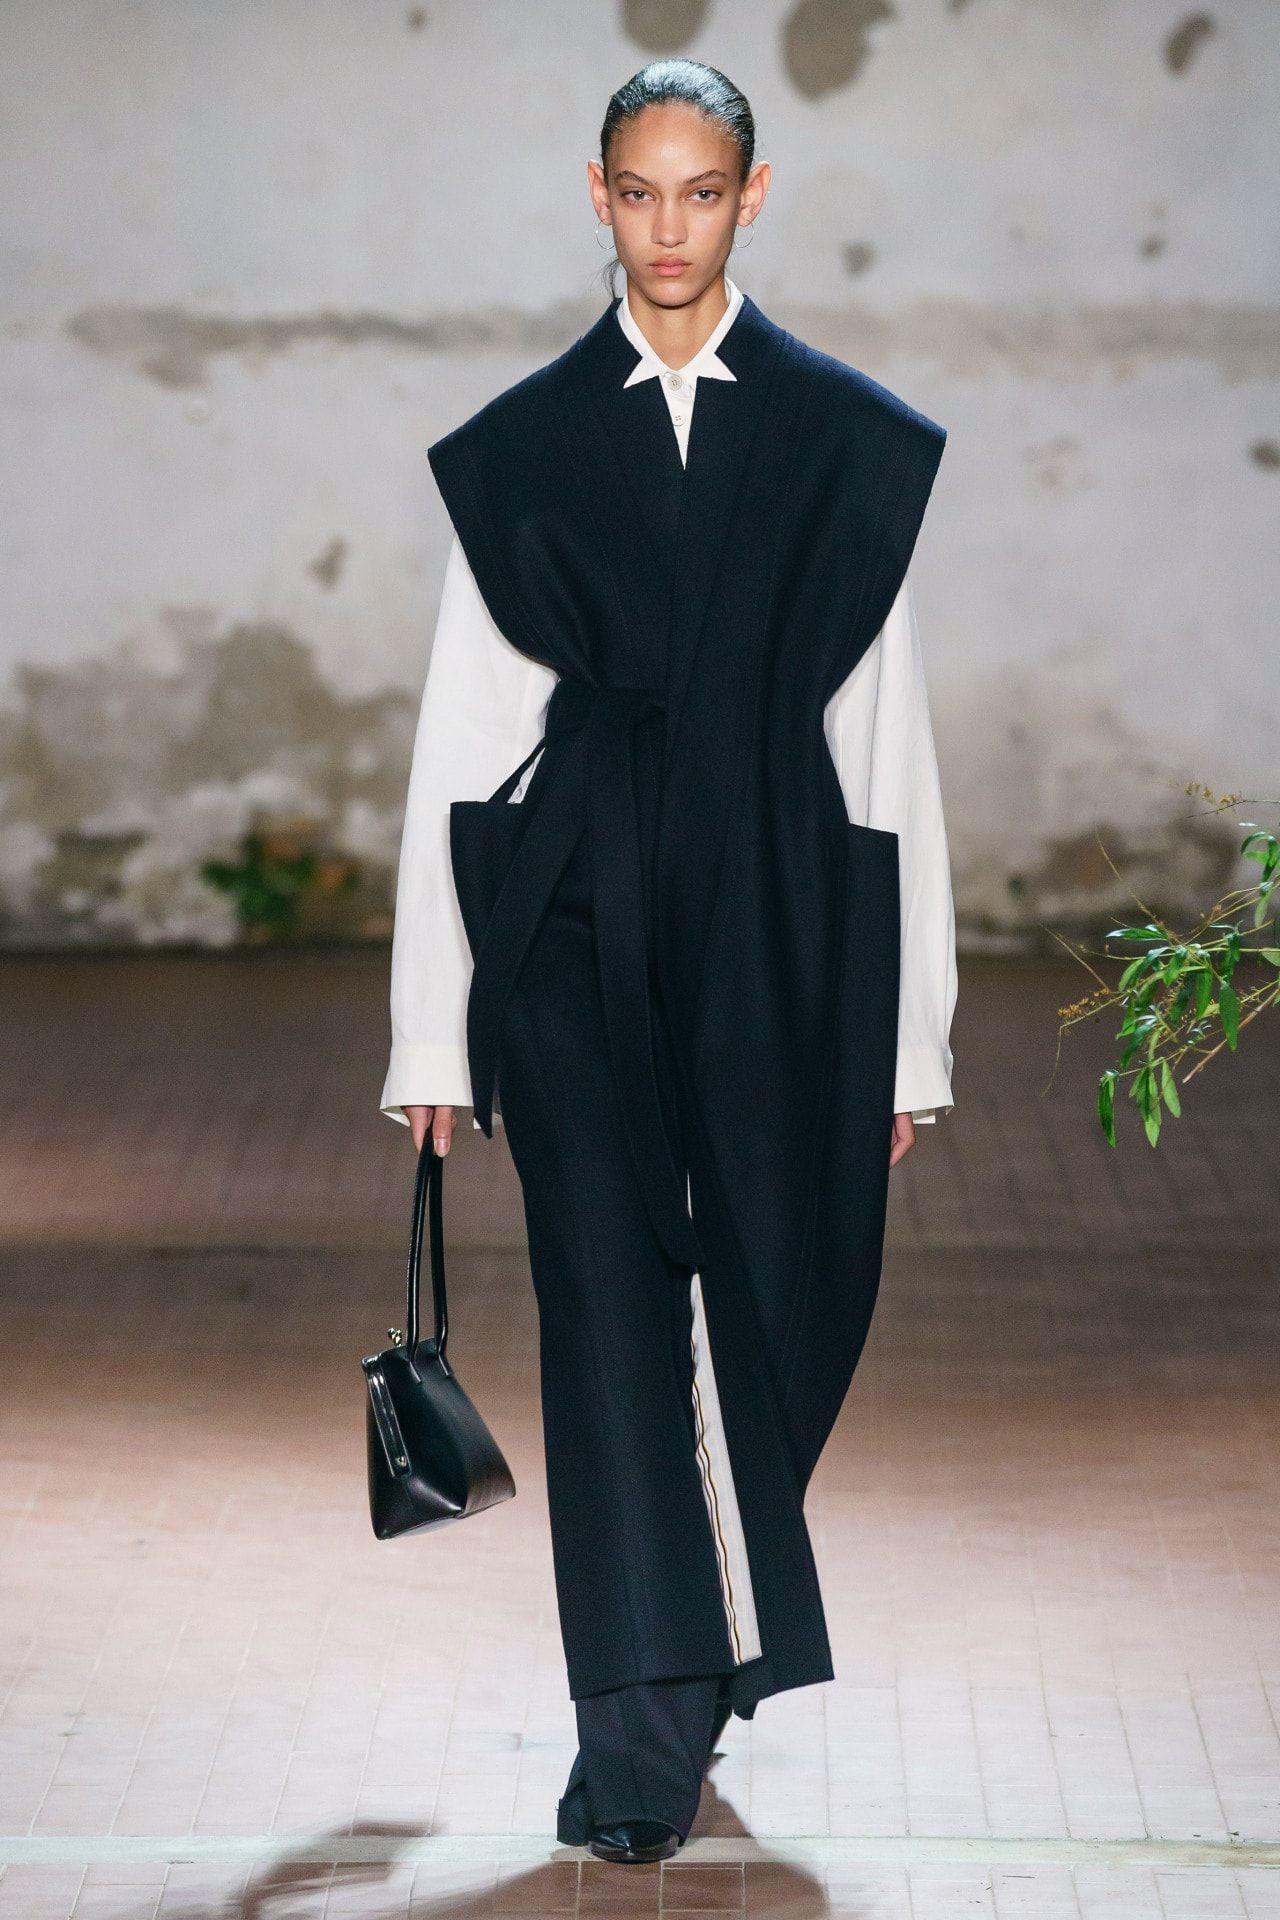 Jil Sander ready-to-wear autumn/winter '19/'20